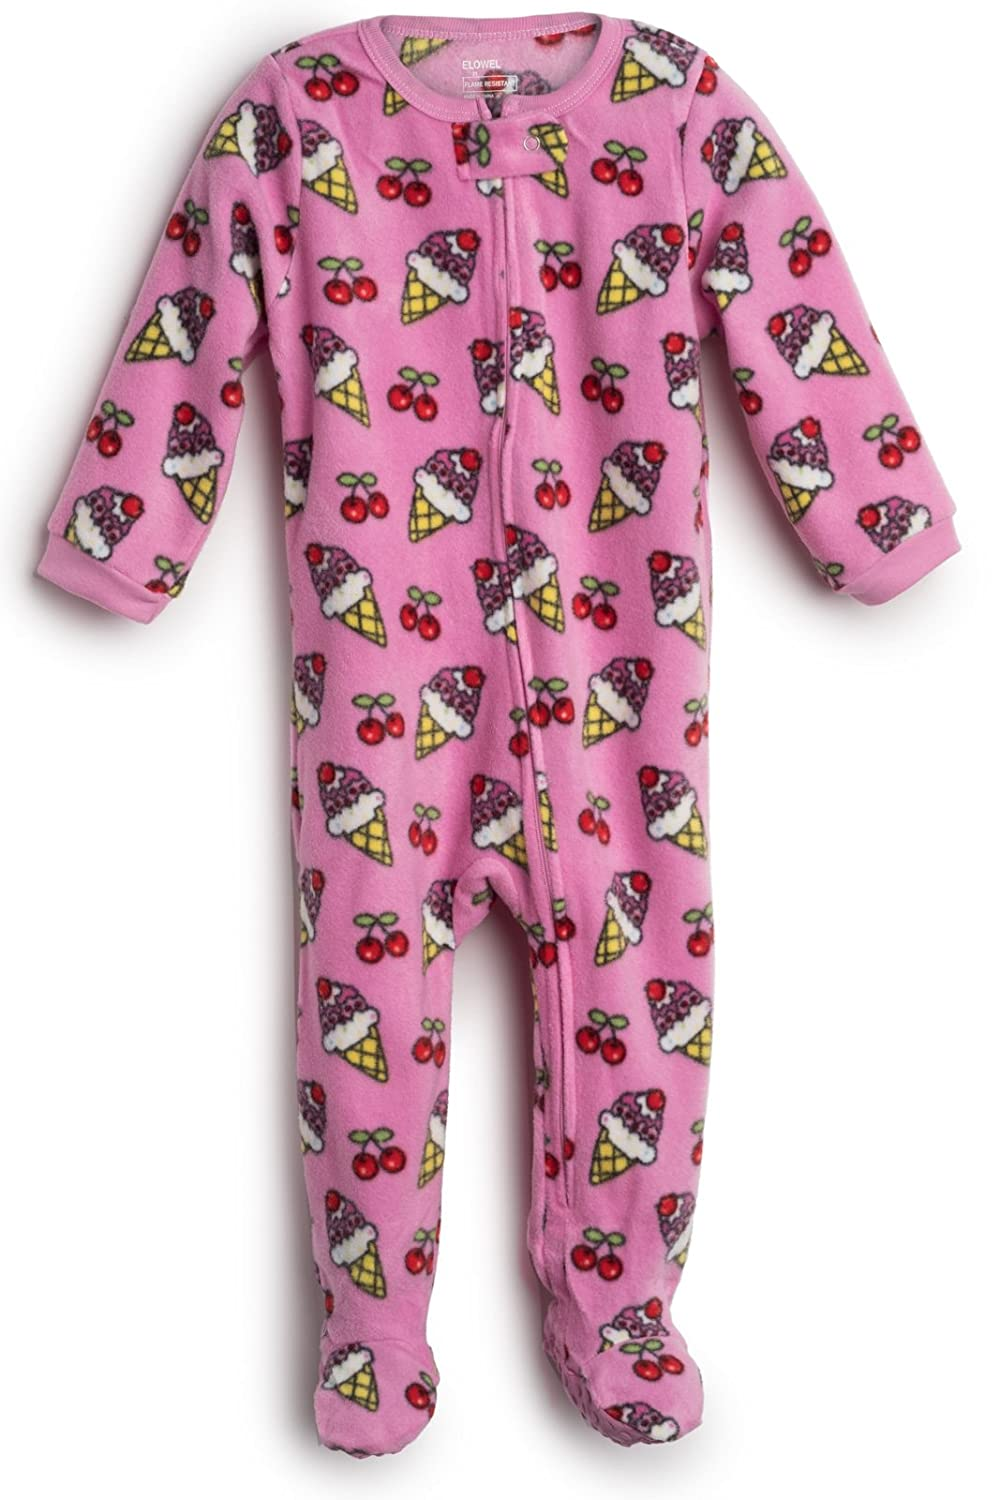 39fb33edff Amazon.com  Elowel Baby Girls Footed Fleece Sleeper Pajamas (Size  6M-5Years)  Clothing